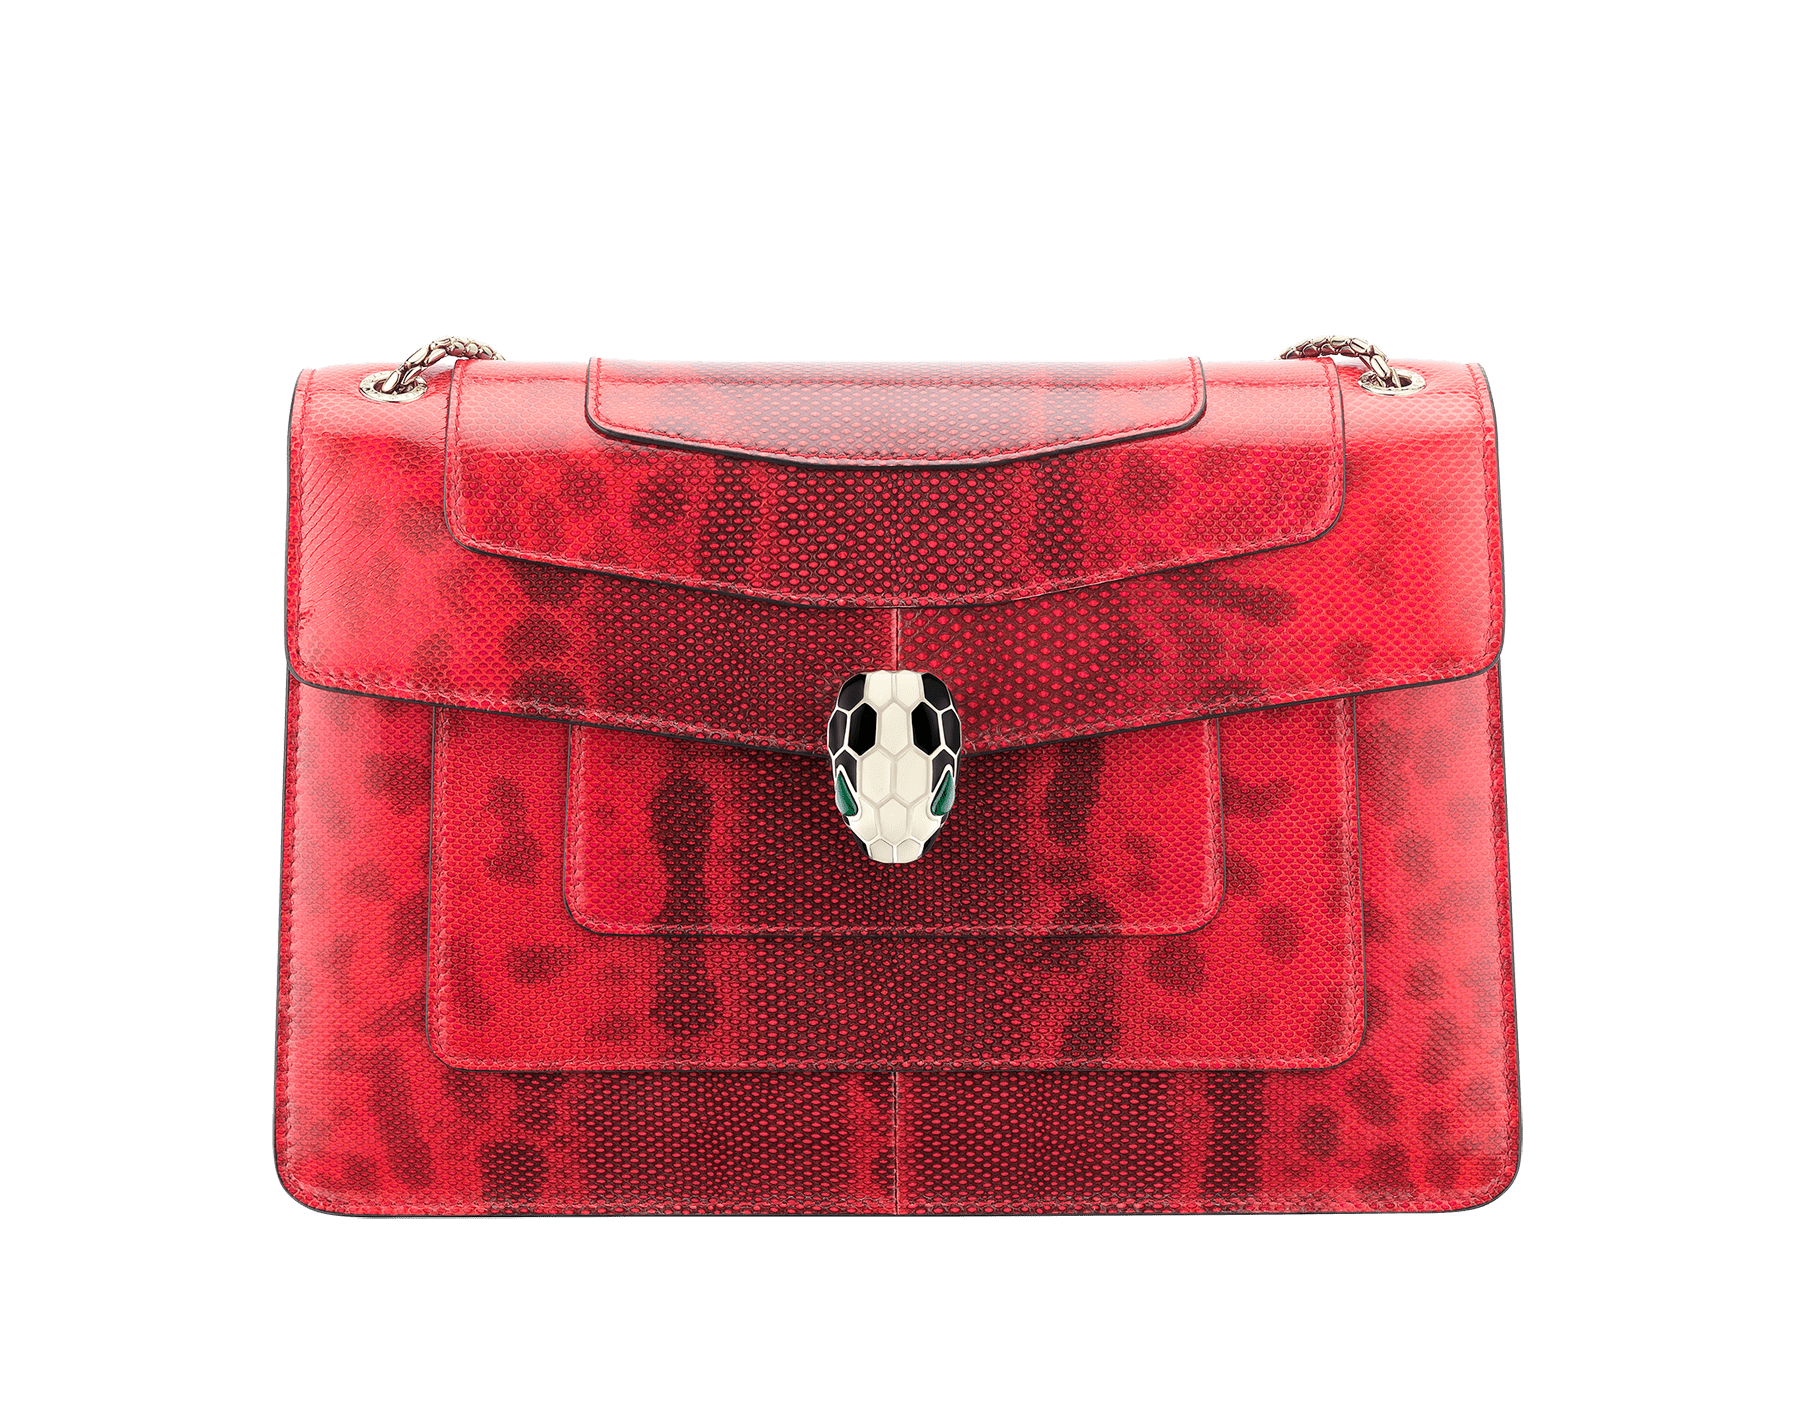 Serpenti Forever shoulder bag in sea star coral shiny karung skin. Snakehead closure in light gold plated brass decorated with black and white enamel, and green malachite eyes. 287918 image 1